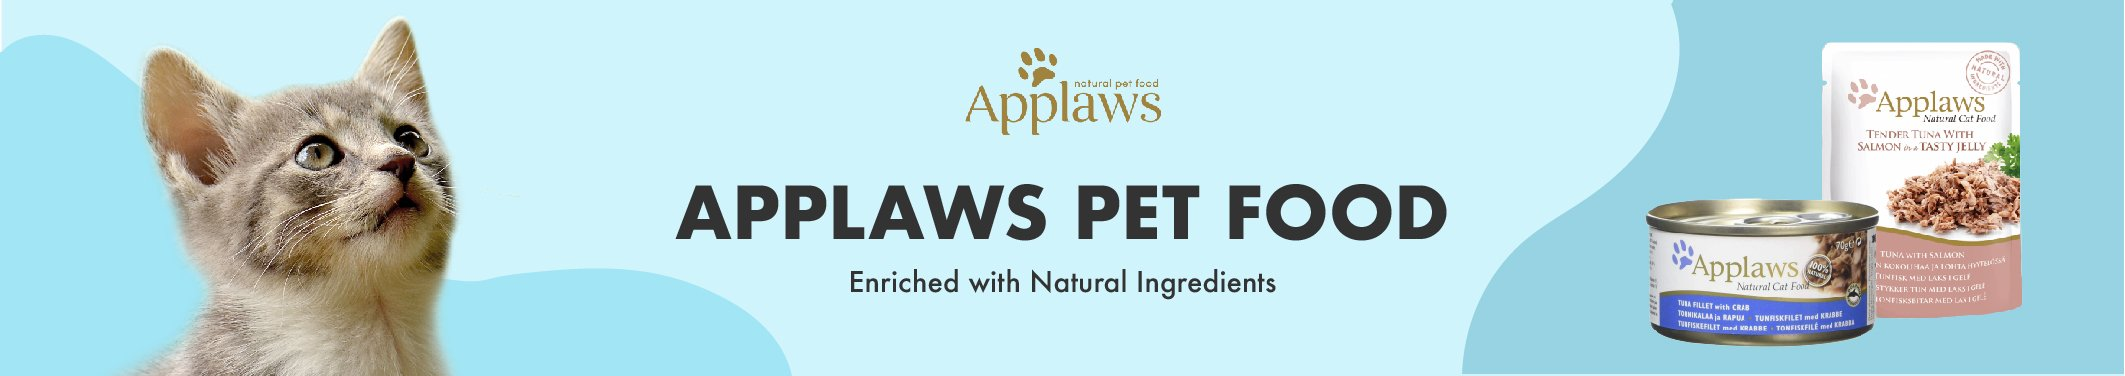 Applaws Pet Food for Cats